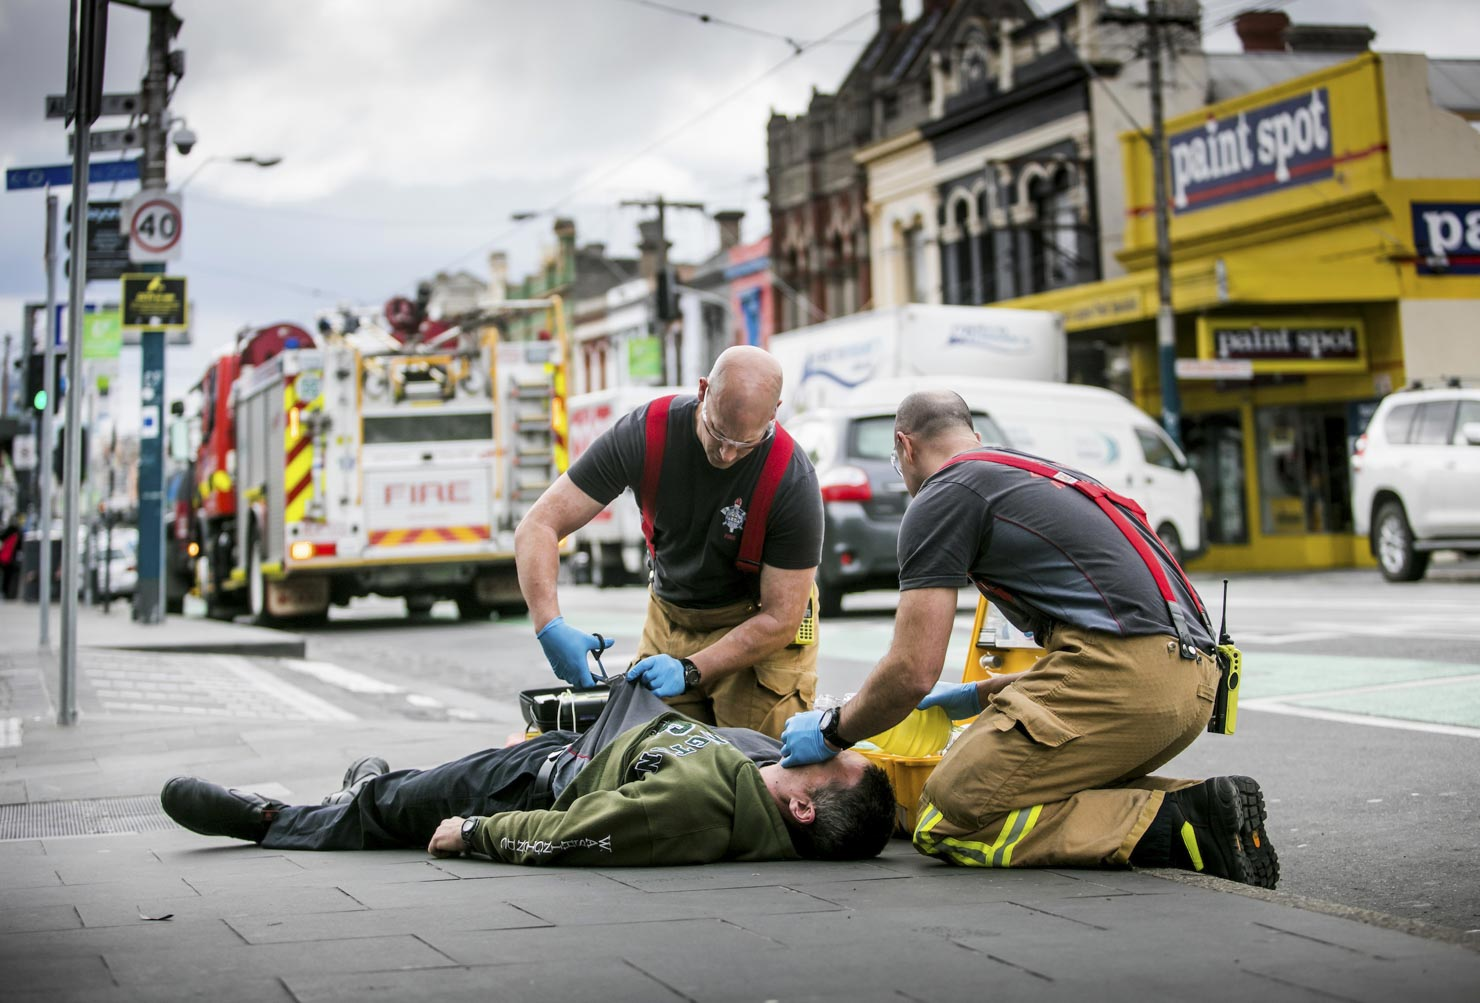 Melbourne Fire Brigade officers work with a man who was overcome by smoke